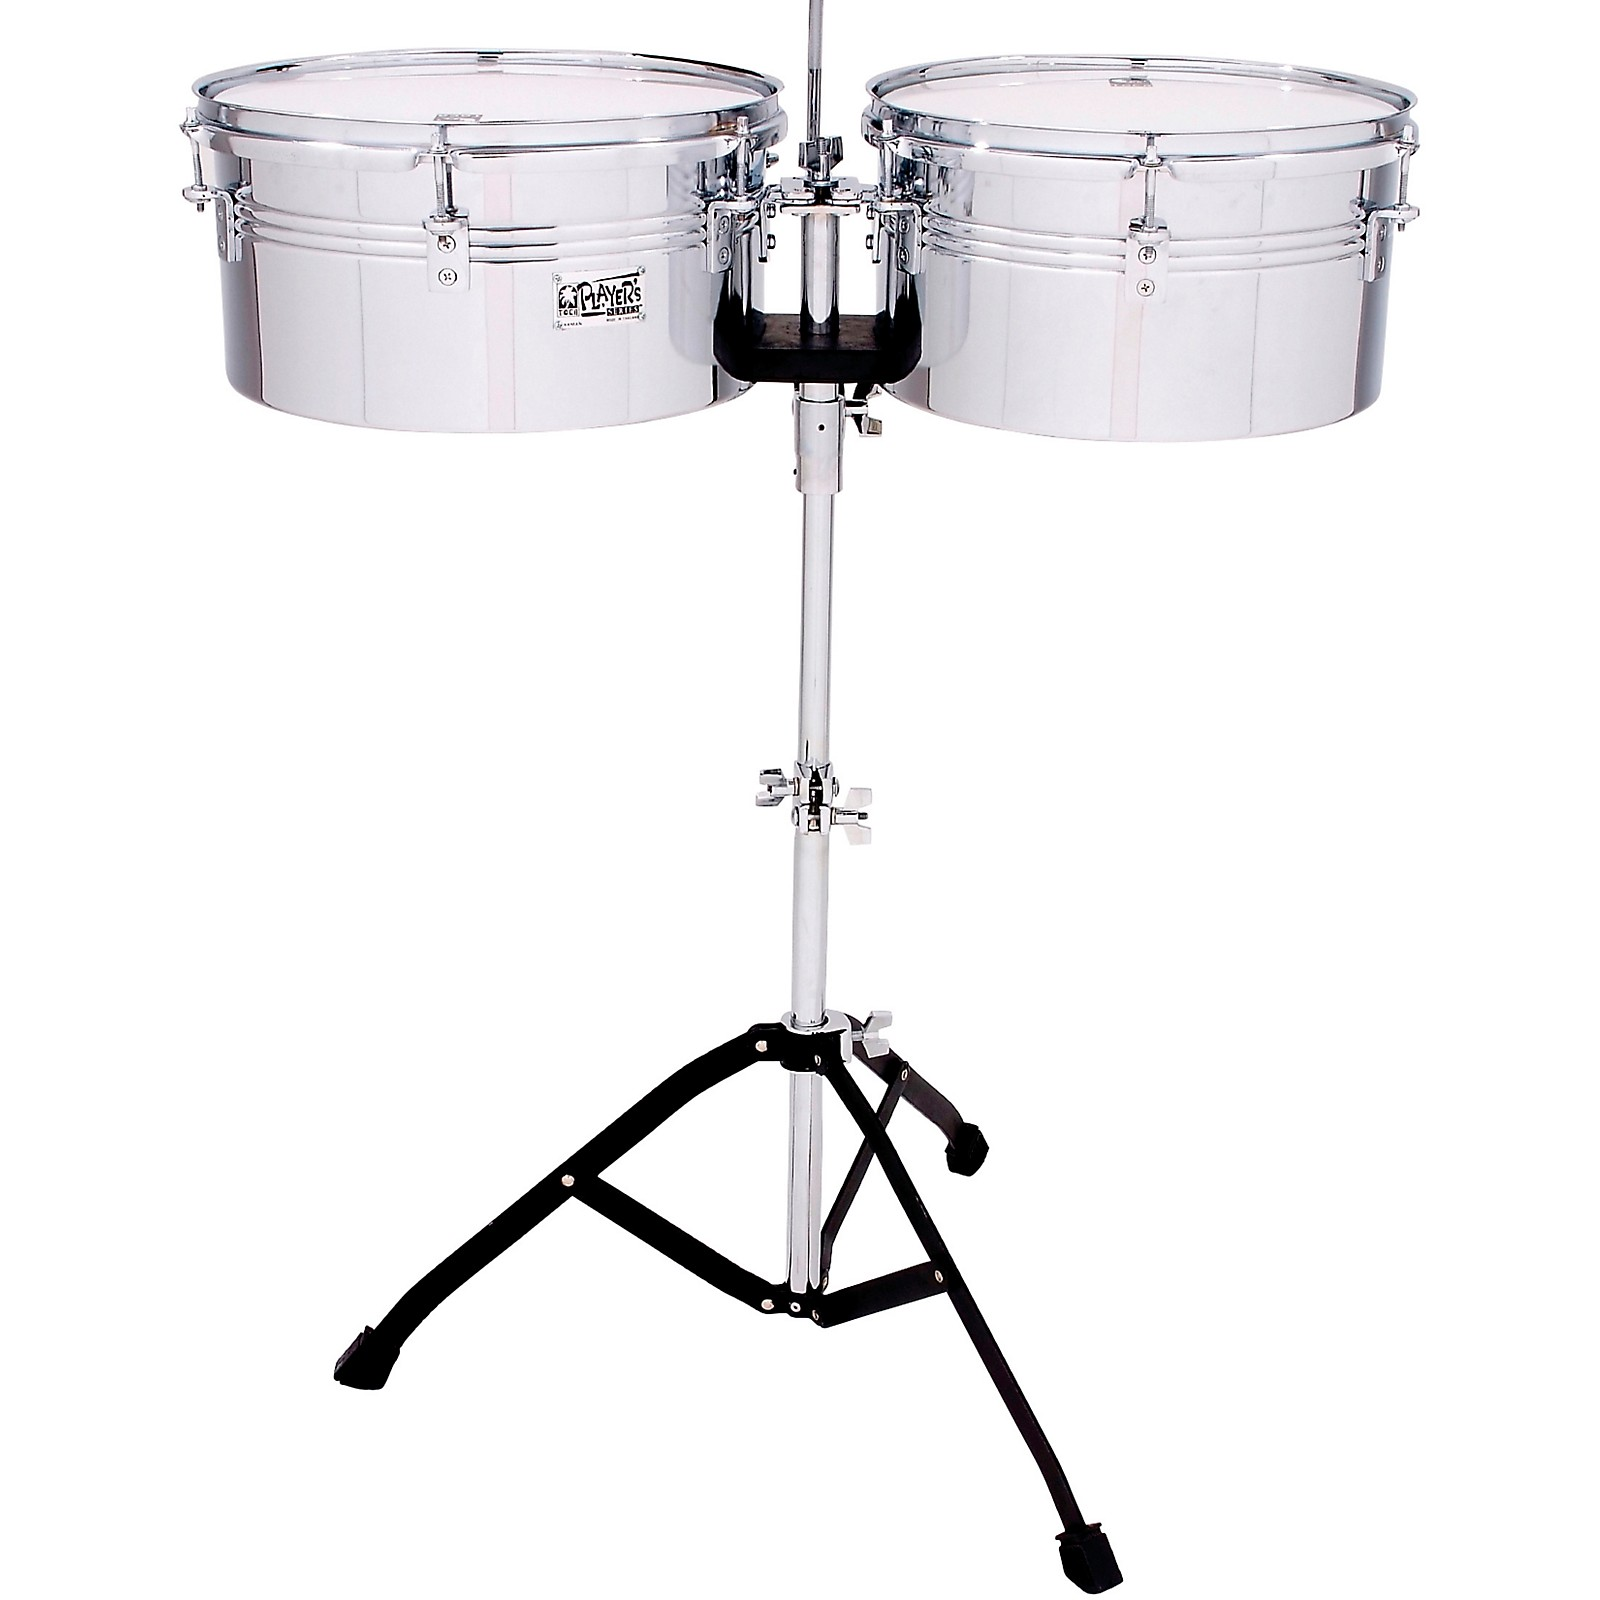 Toca Players Series Timbale Set with 13 and 14 in. steel drums and single braced stand